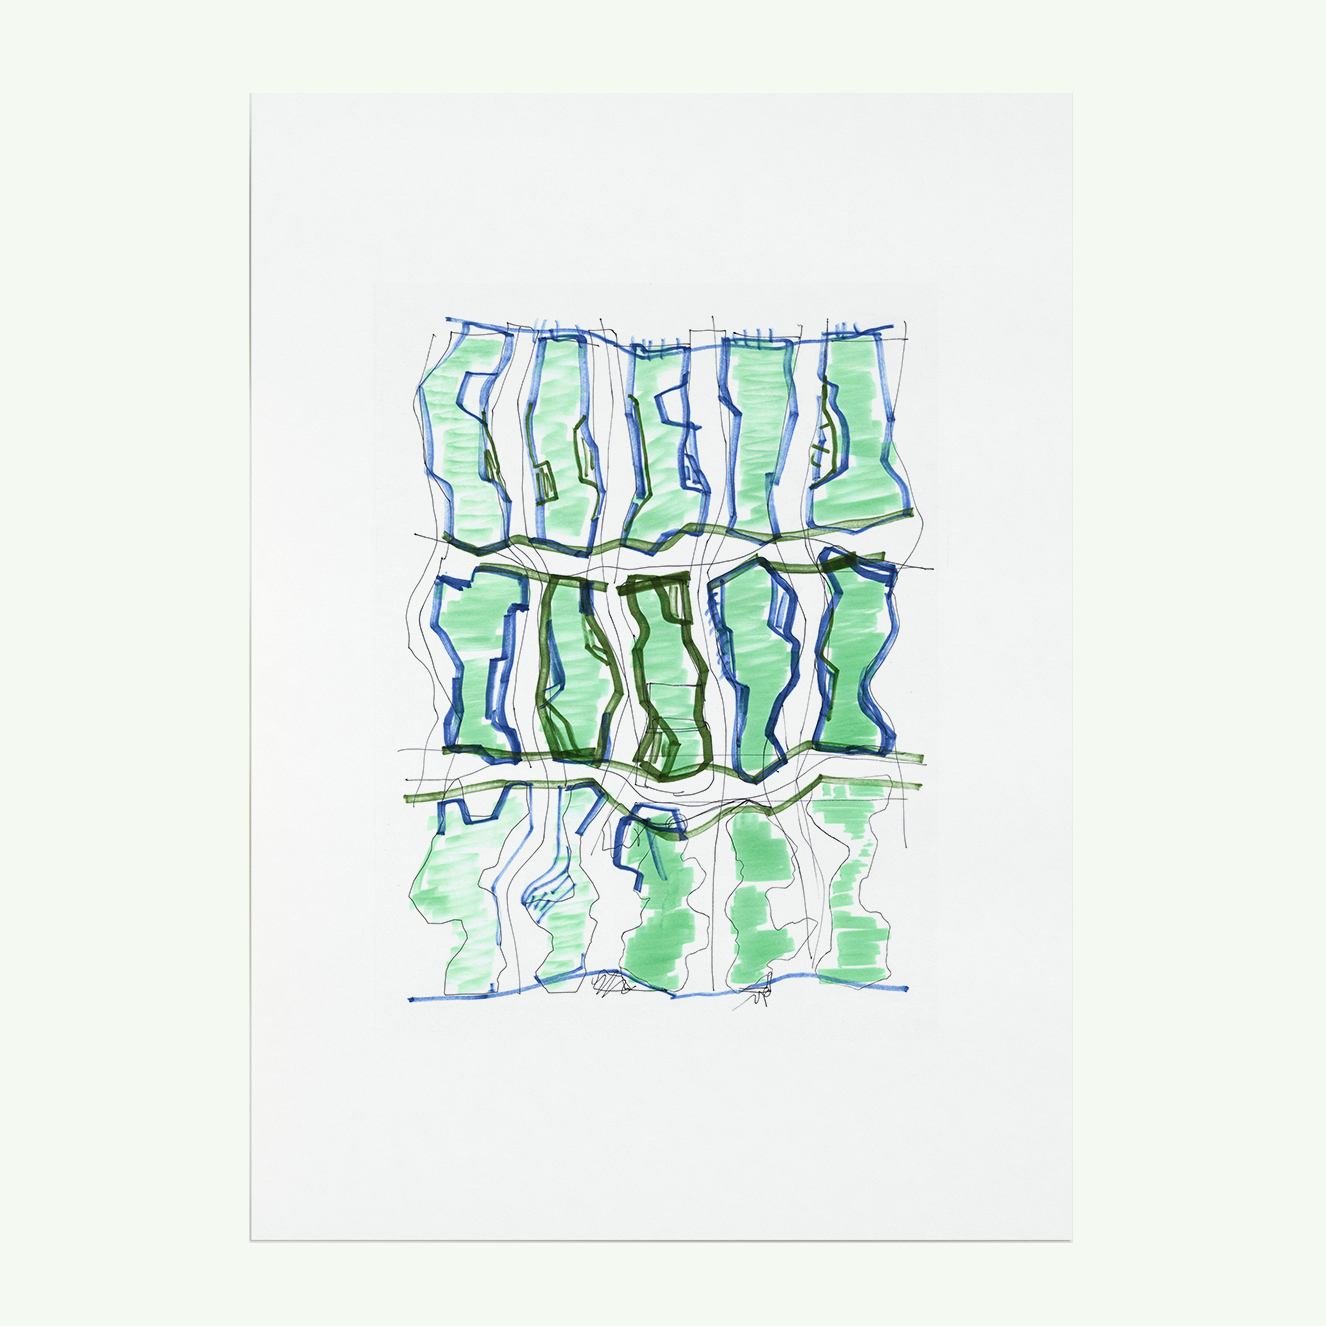 Lithography #1